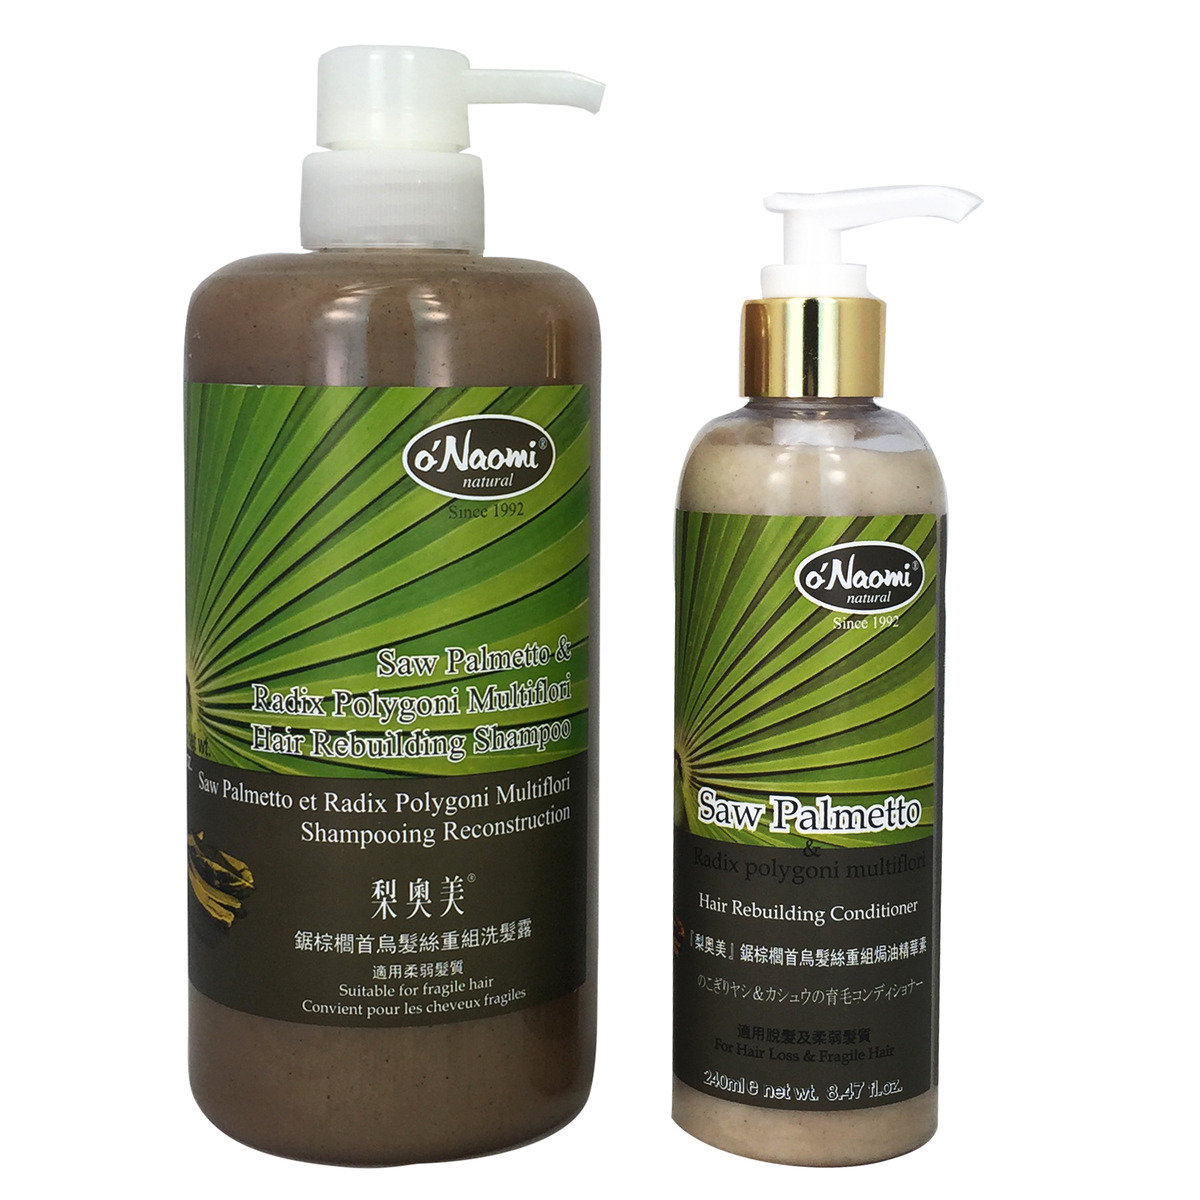 Saw Palmetto Hair Rebuiliding Shampoo 800mlx1 & Treament 240mlx1